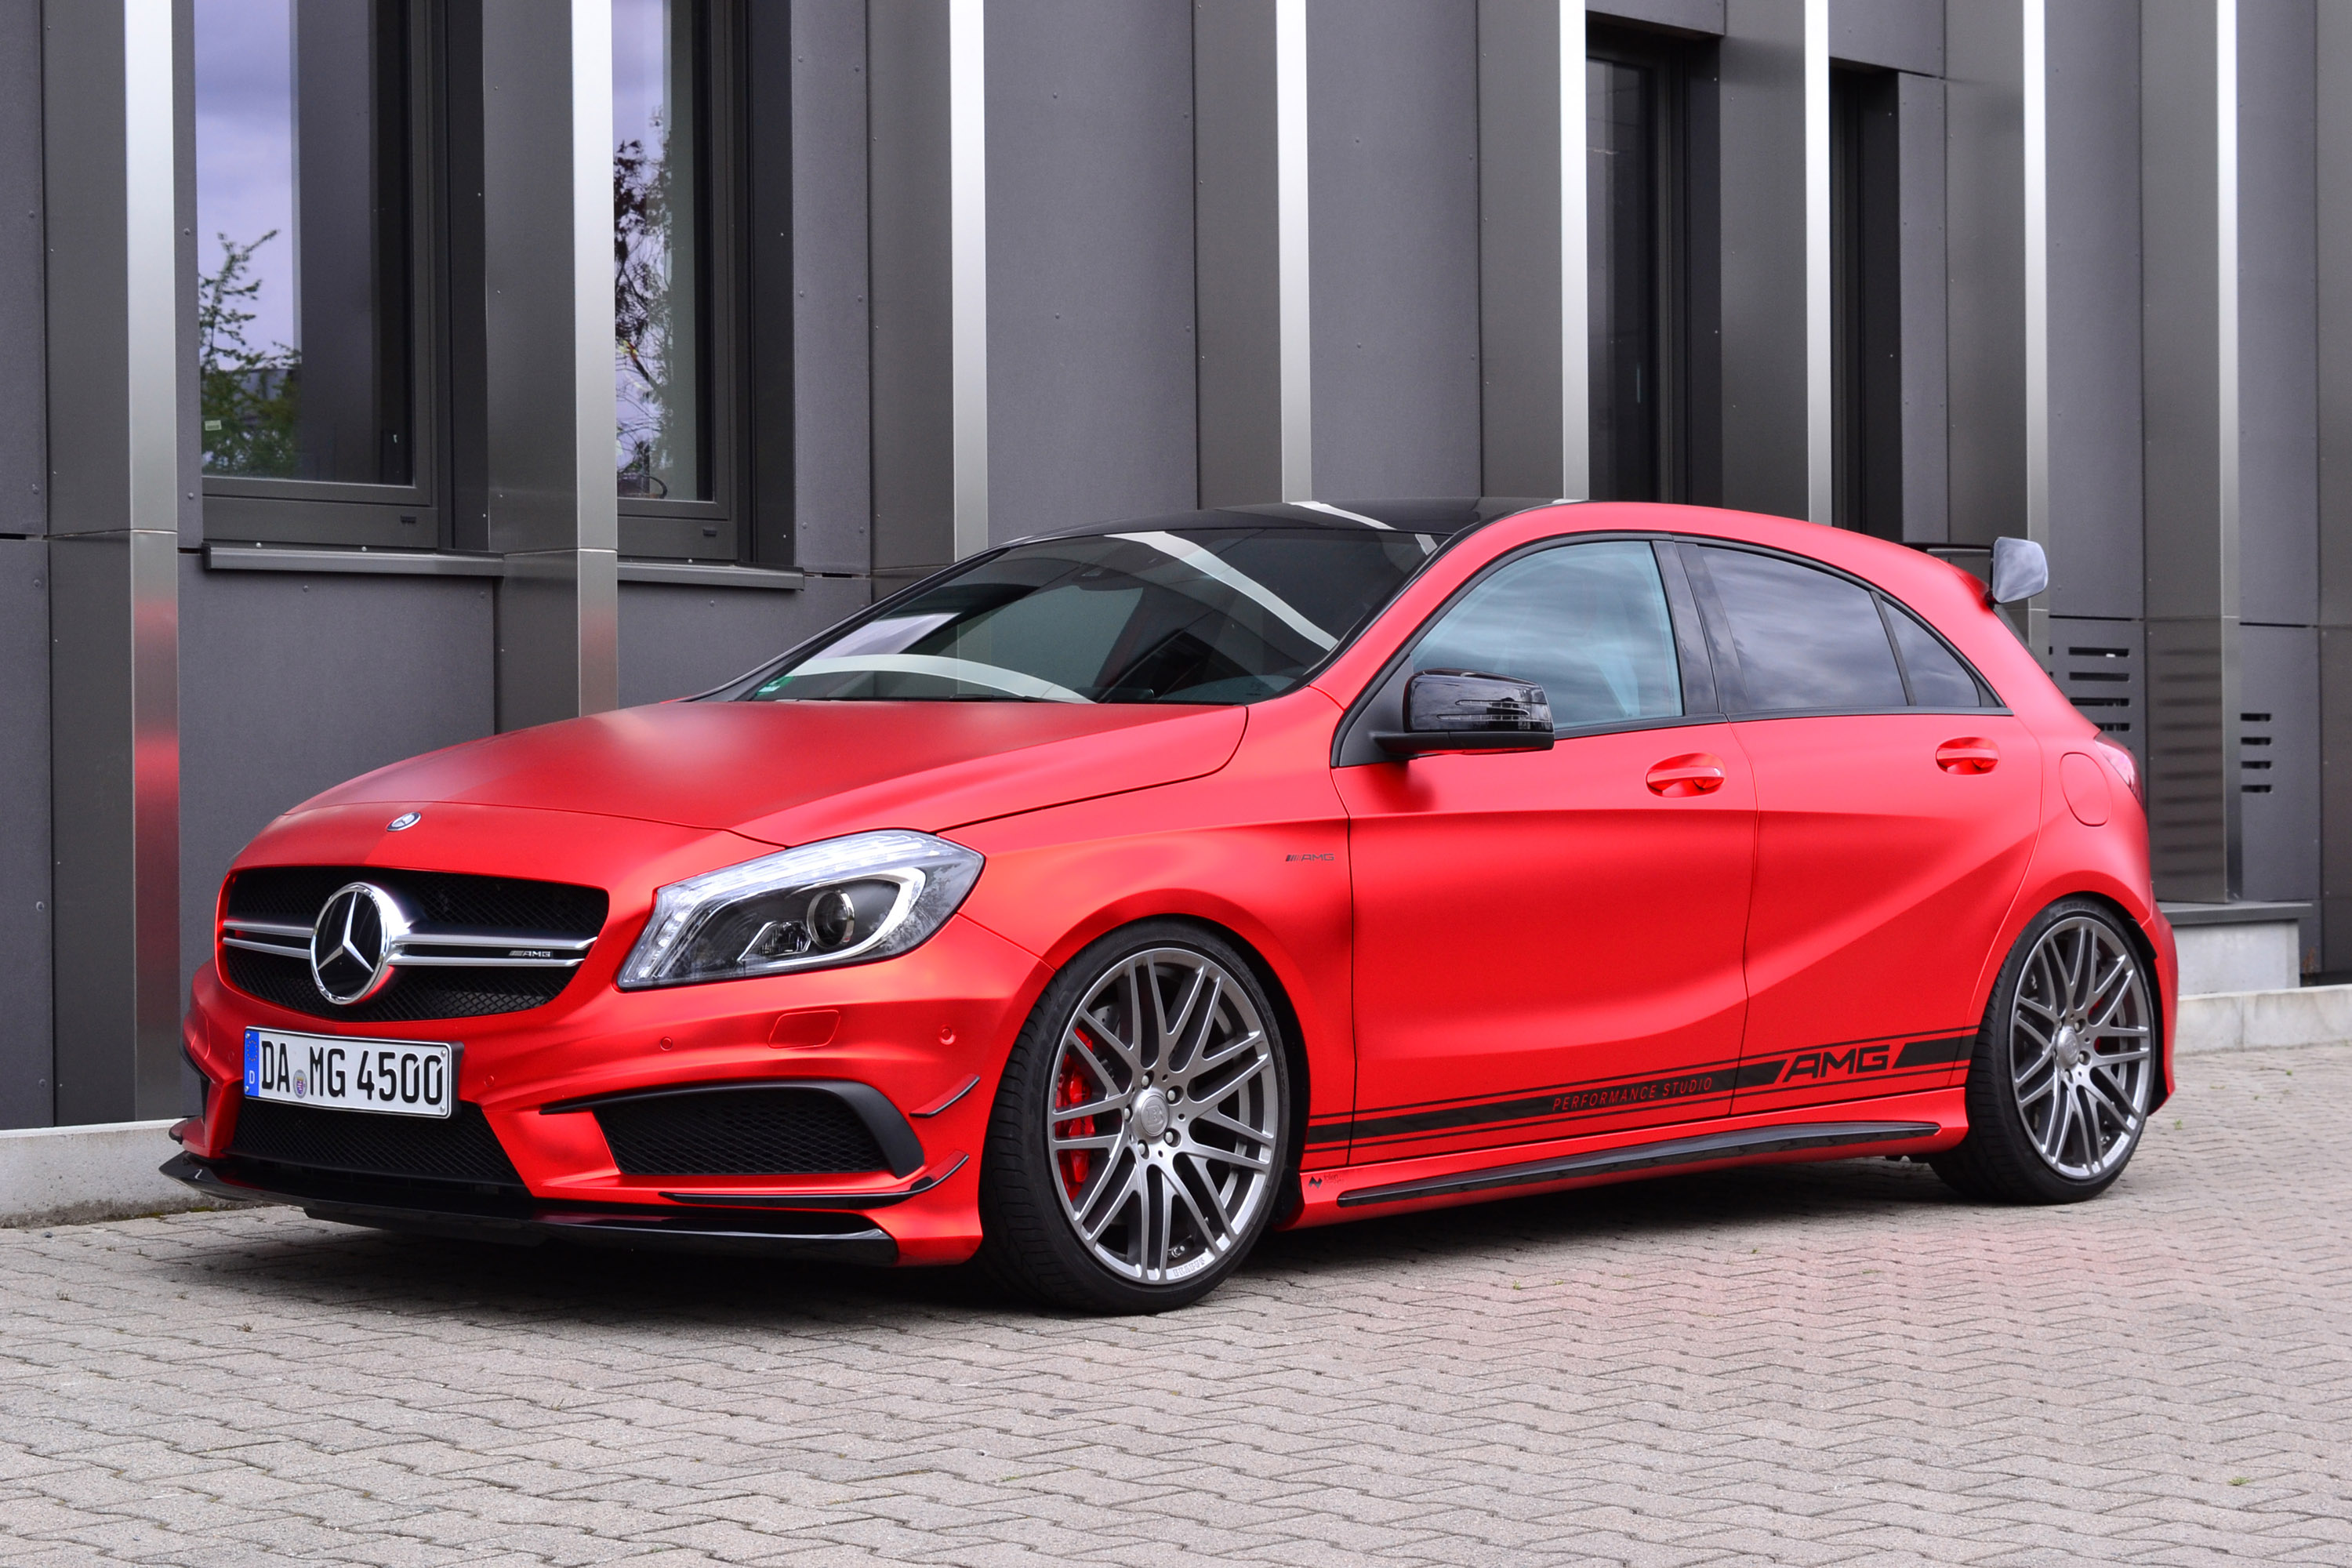 Take a look at this mercedes benz a45 amg by folien for Mercedes benz a45 amg